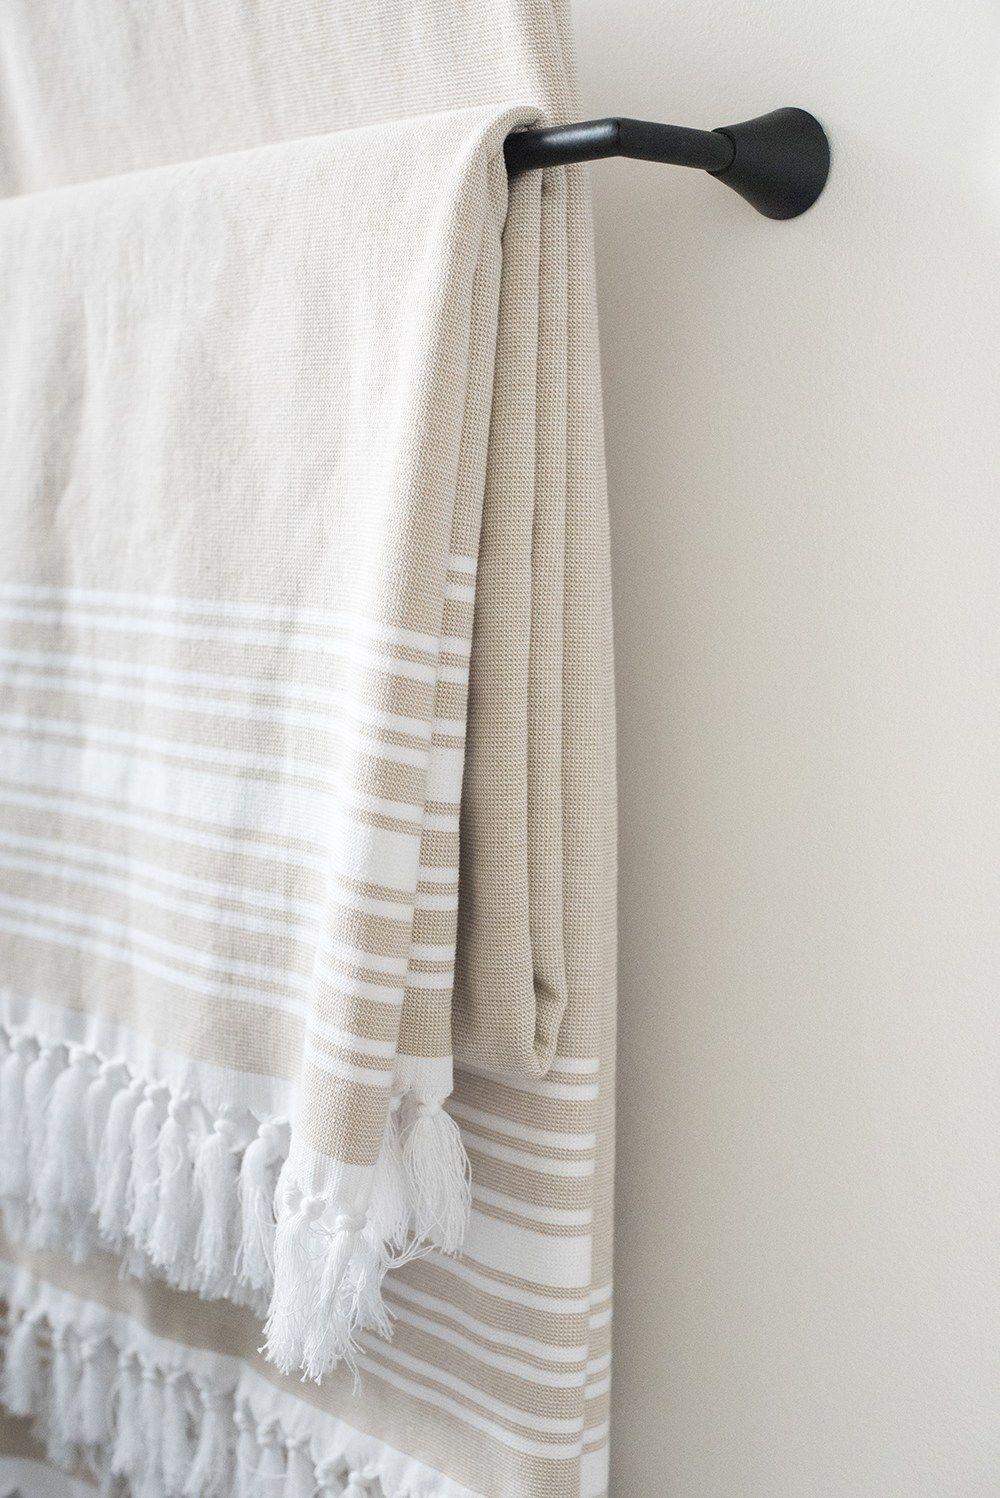 How To Care For Turkish Towels Turkish Towels Turkish Towels